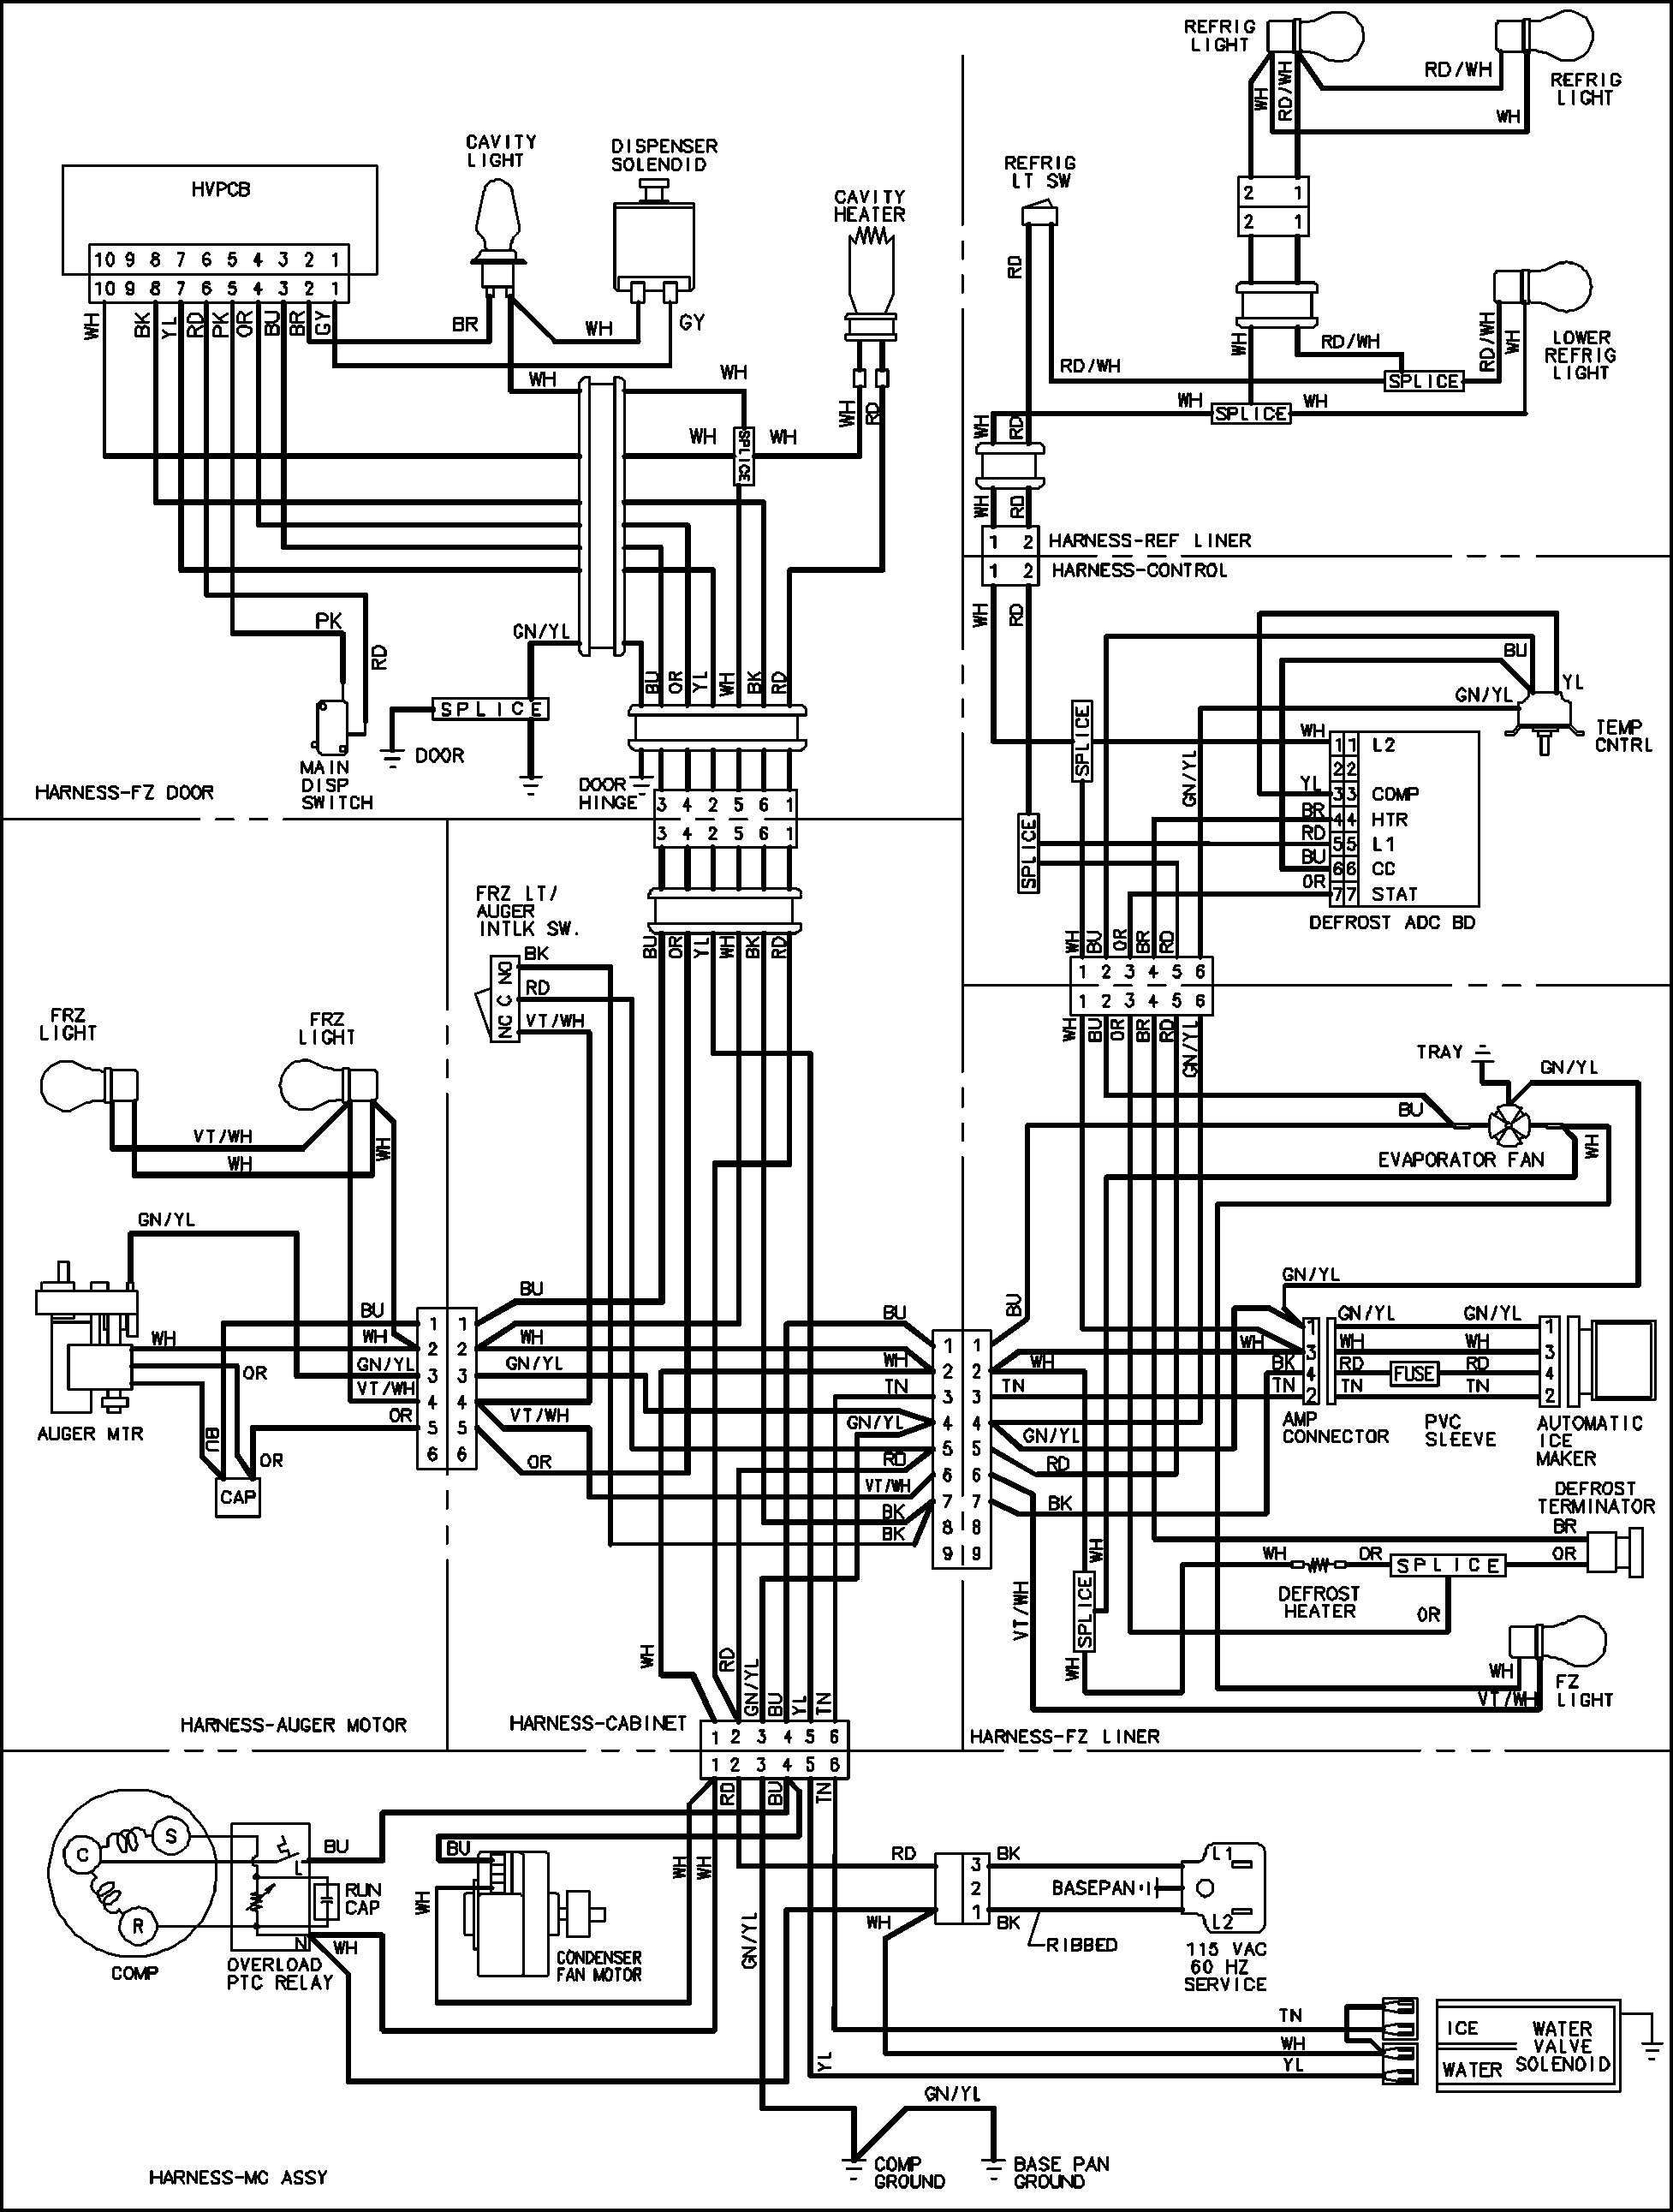 maytag dryer wiring schematic | free wiring diagram maytag dryer wiring diagram mdg6700aww